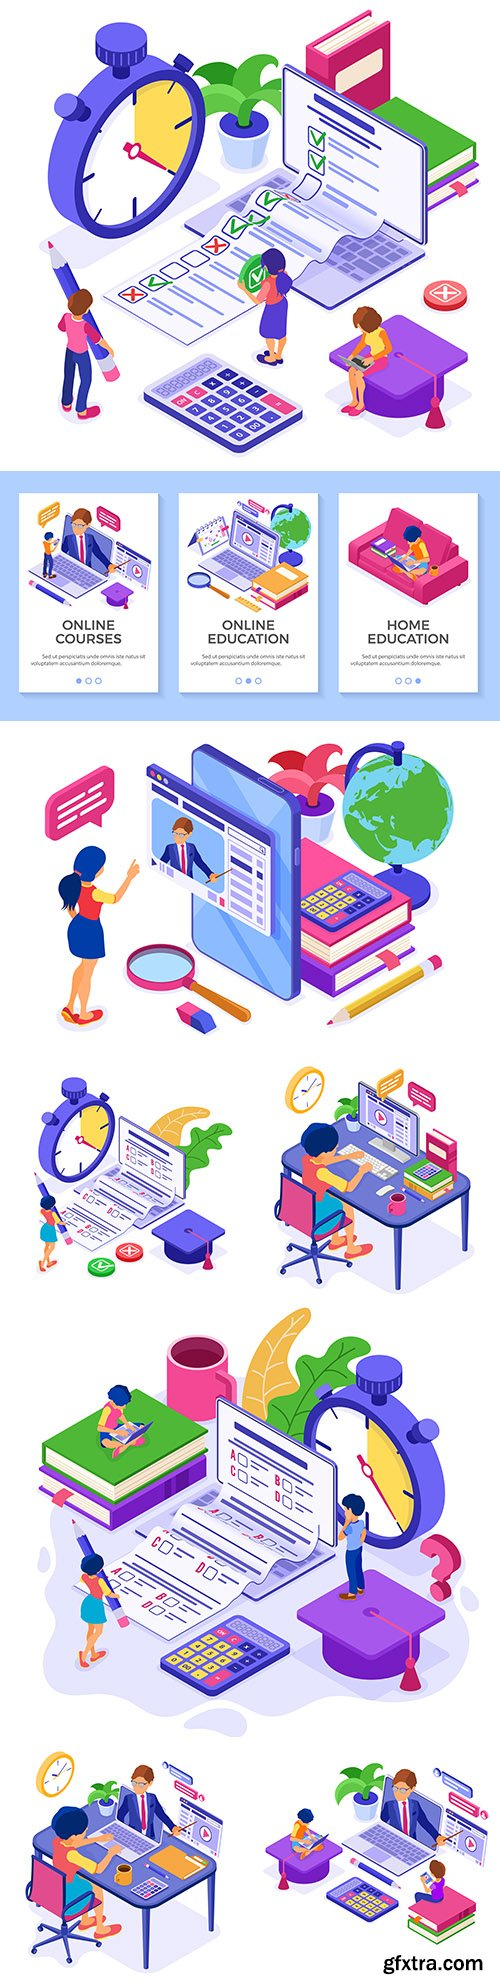 Online distance learning from home isometric illustrations